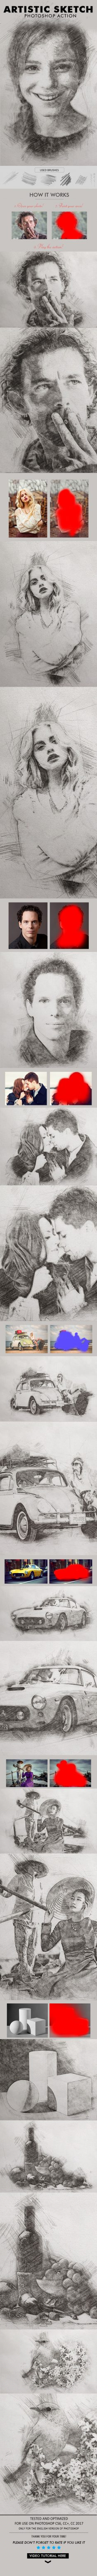 Artistic Sketch Photoshop Action by Ibragimov